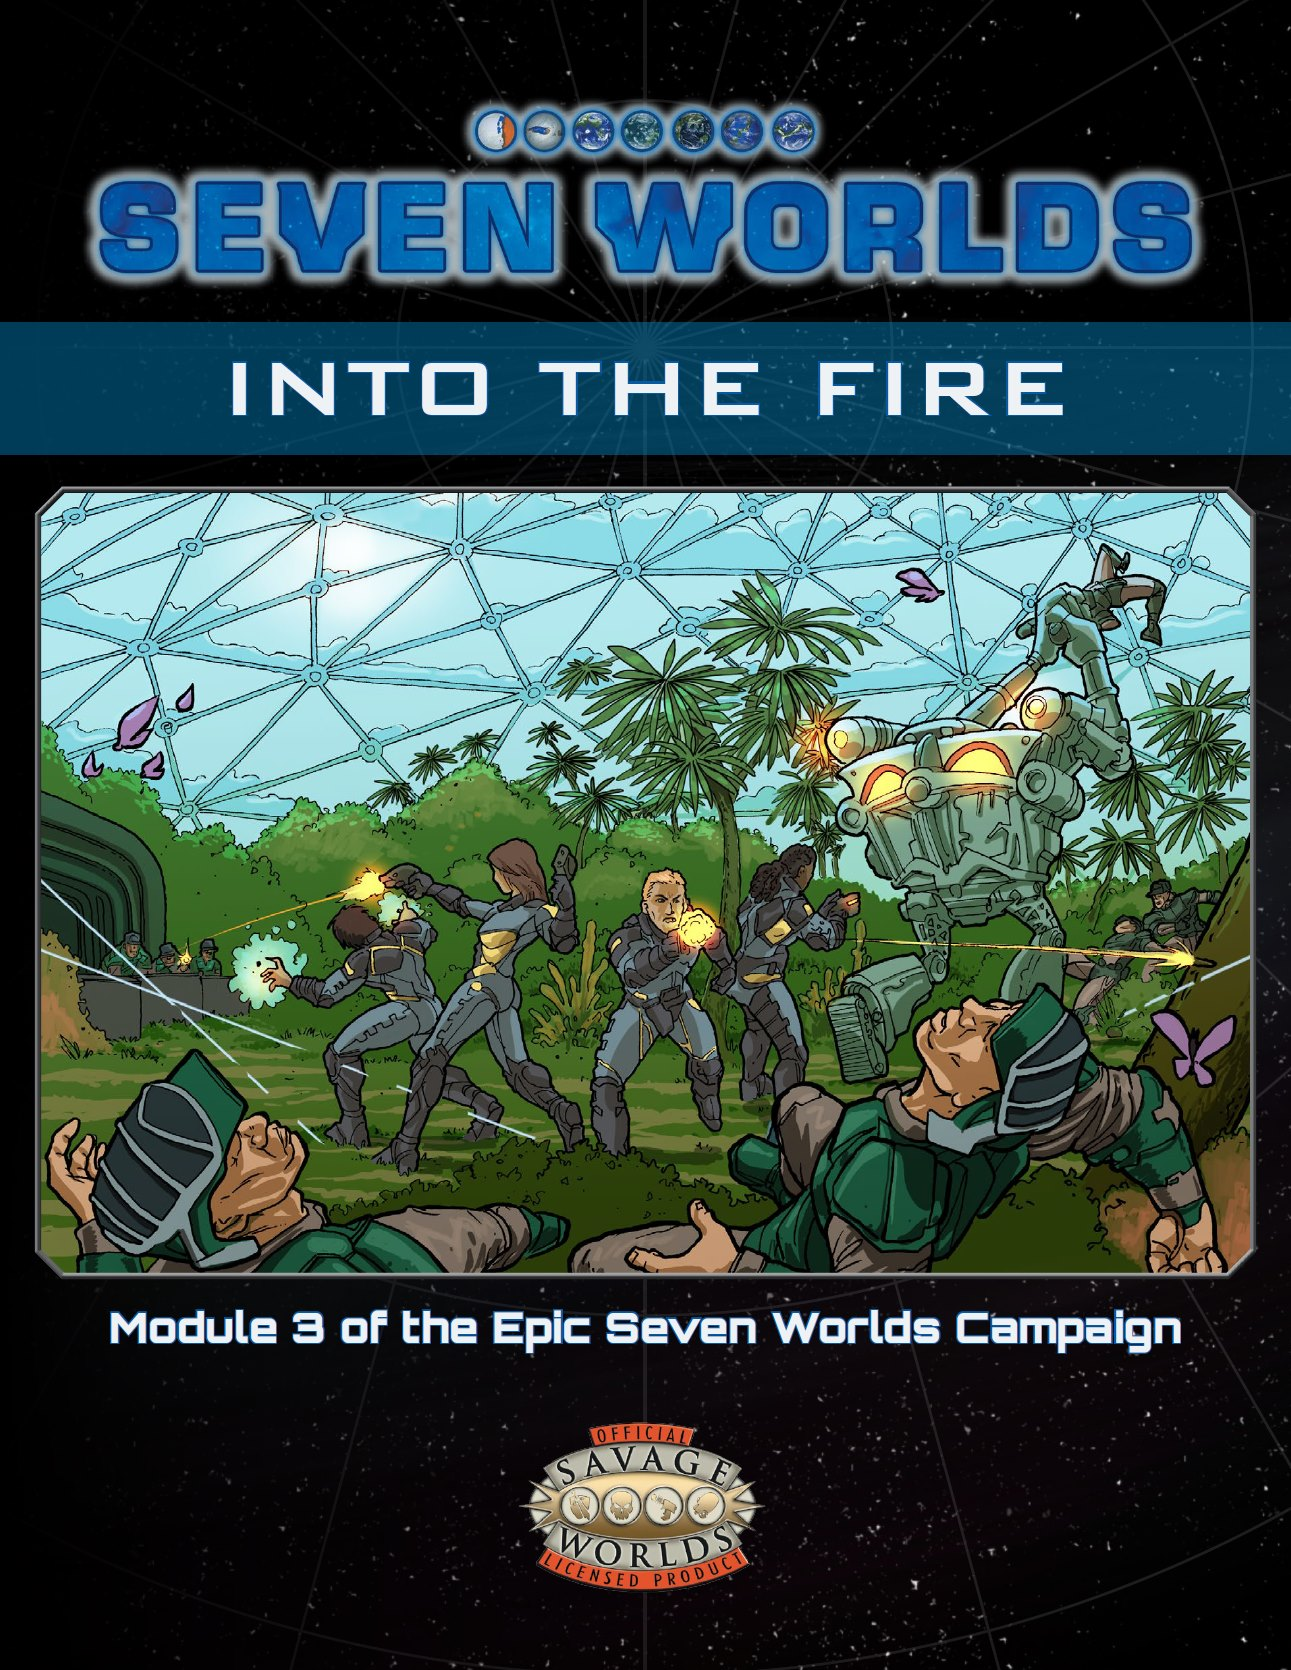 Module 3 - Into the Fire